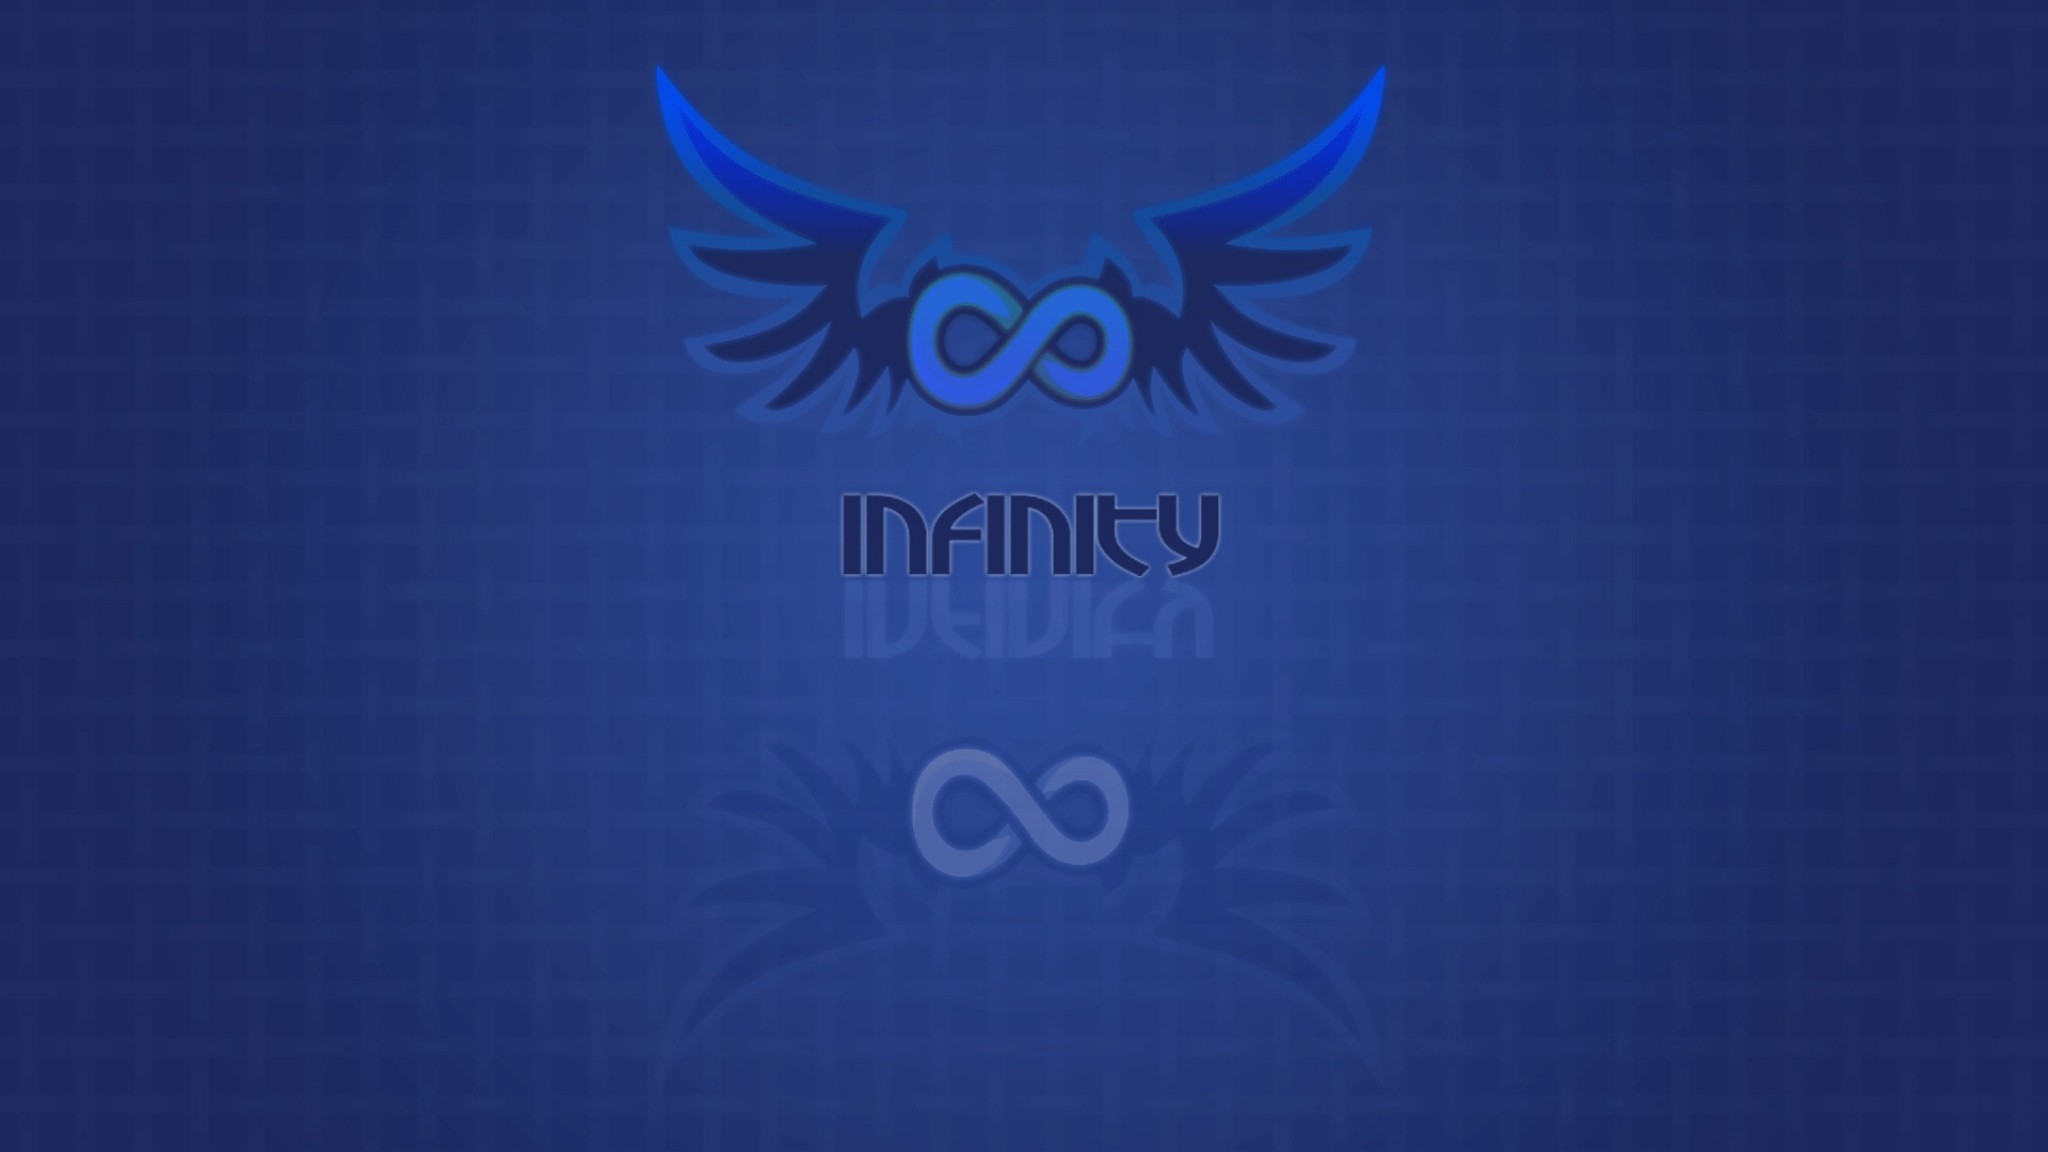 Infinity Sign Wallpaper Iphone – image #474